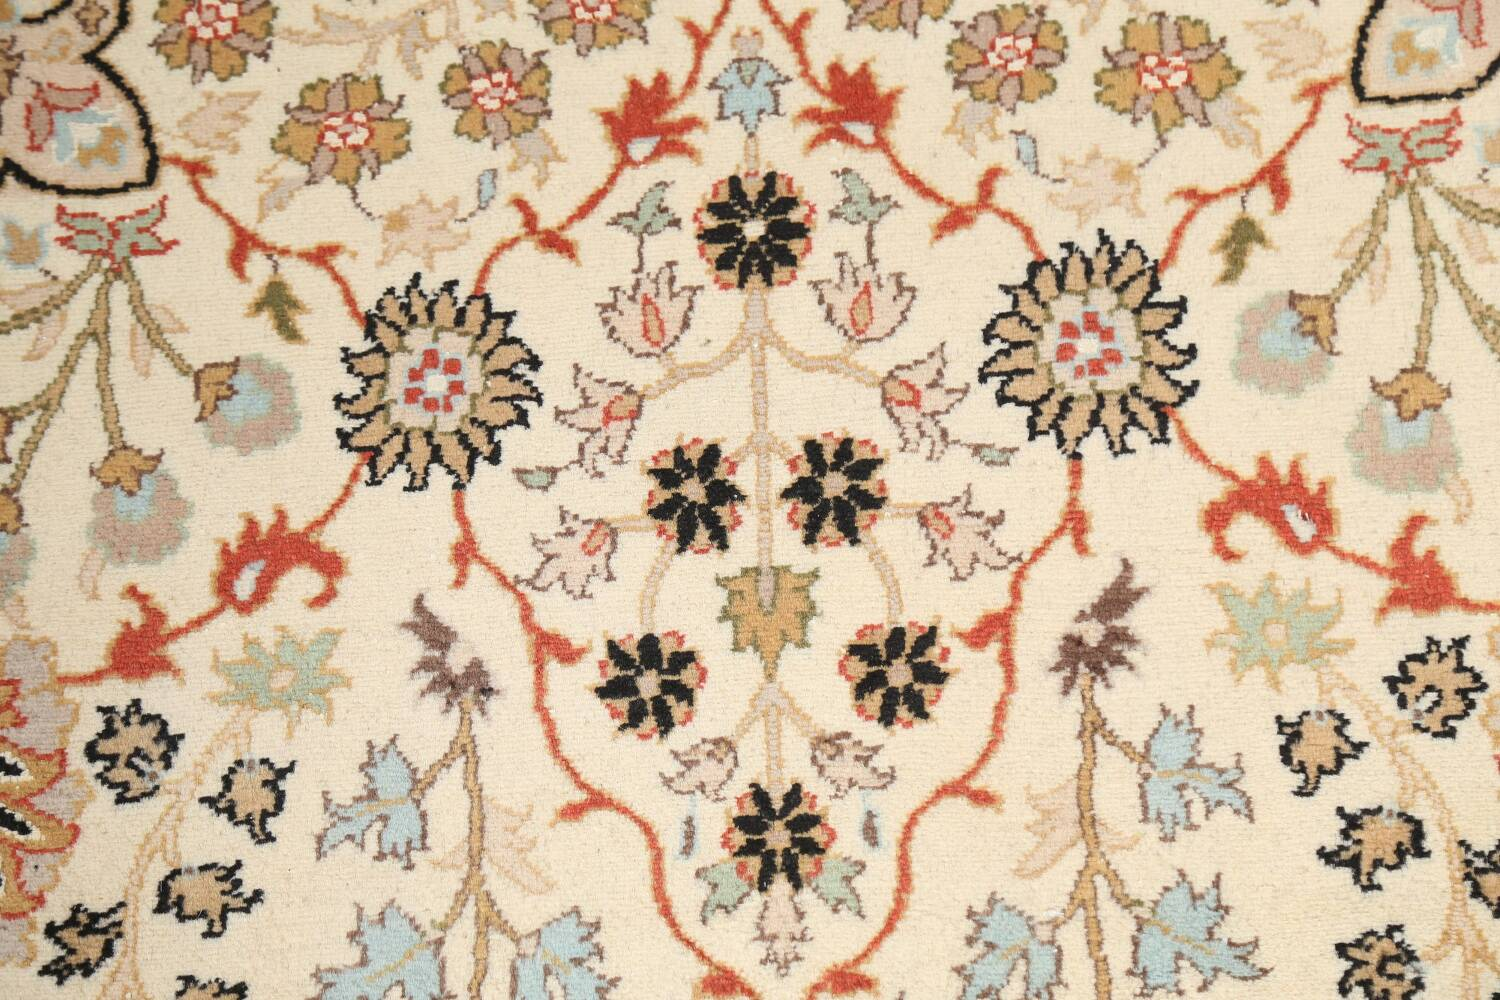 Vegetable Dye Floral Tabriz Oriental Area Rug 4x7 image 9